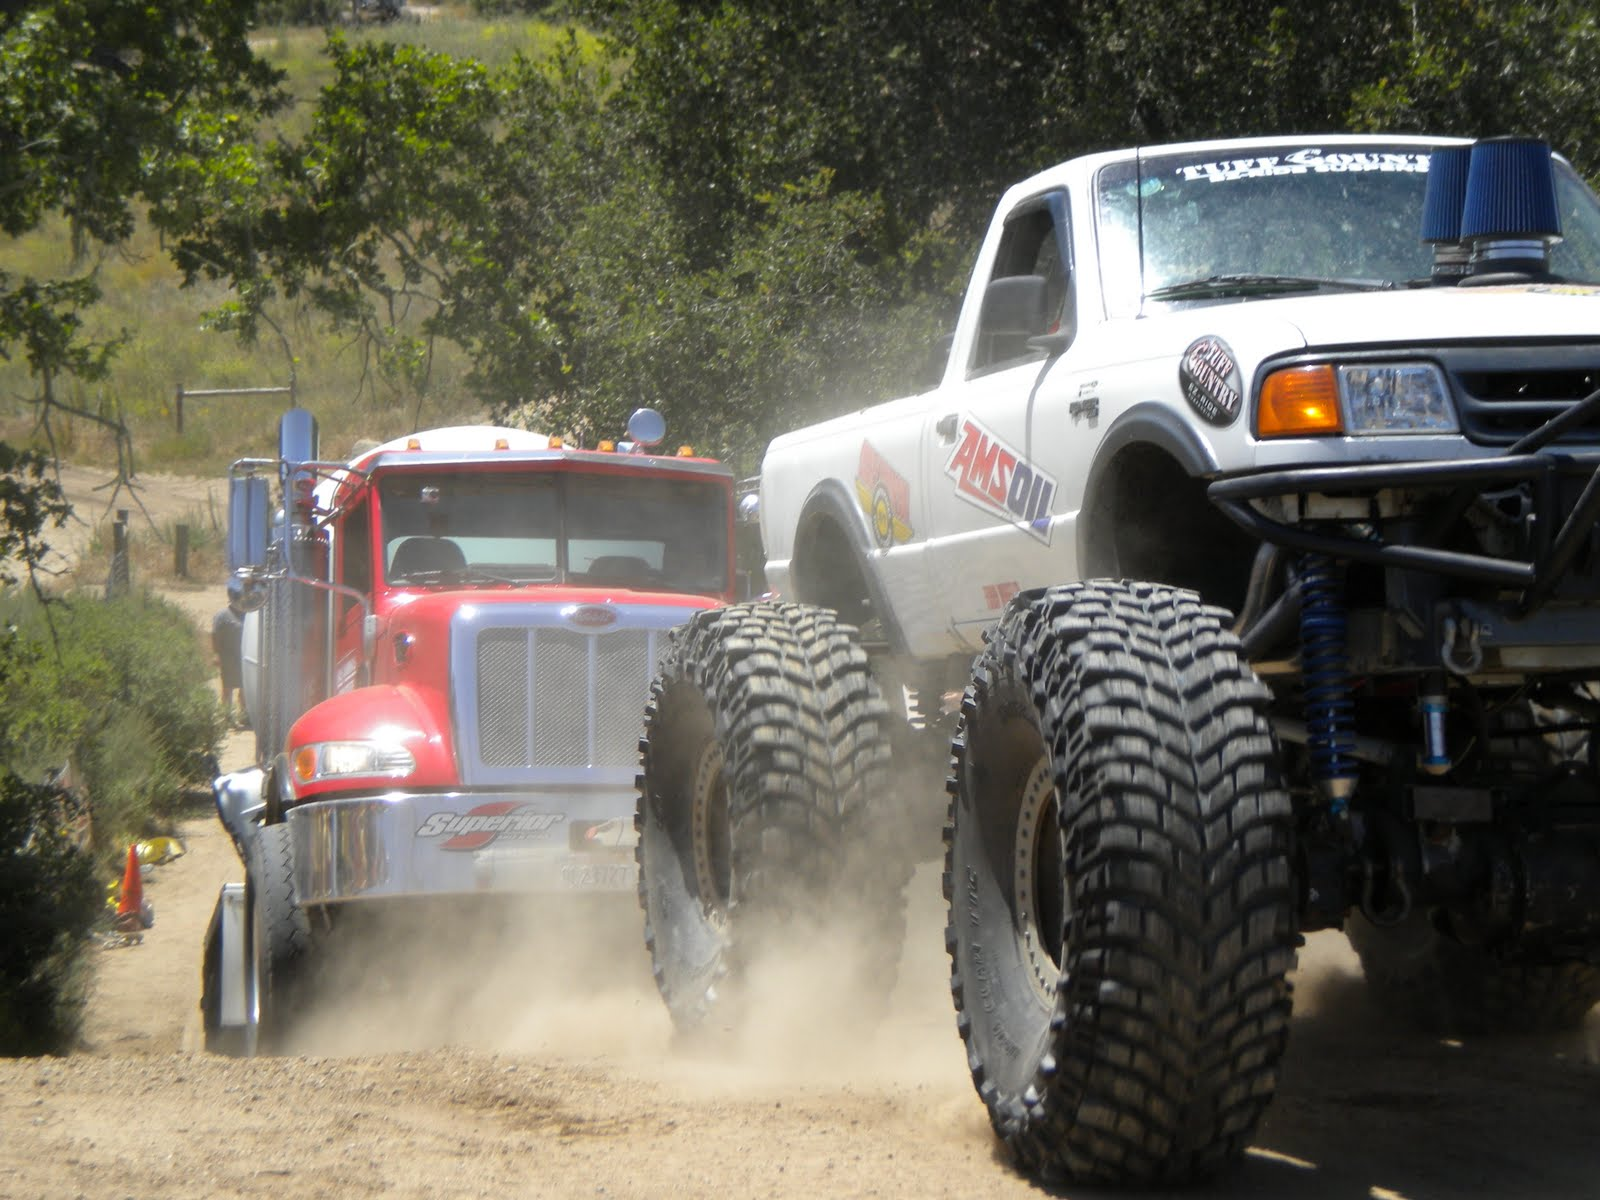 2010 top truck challenge now airing on outdoor channel